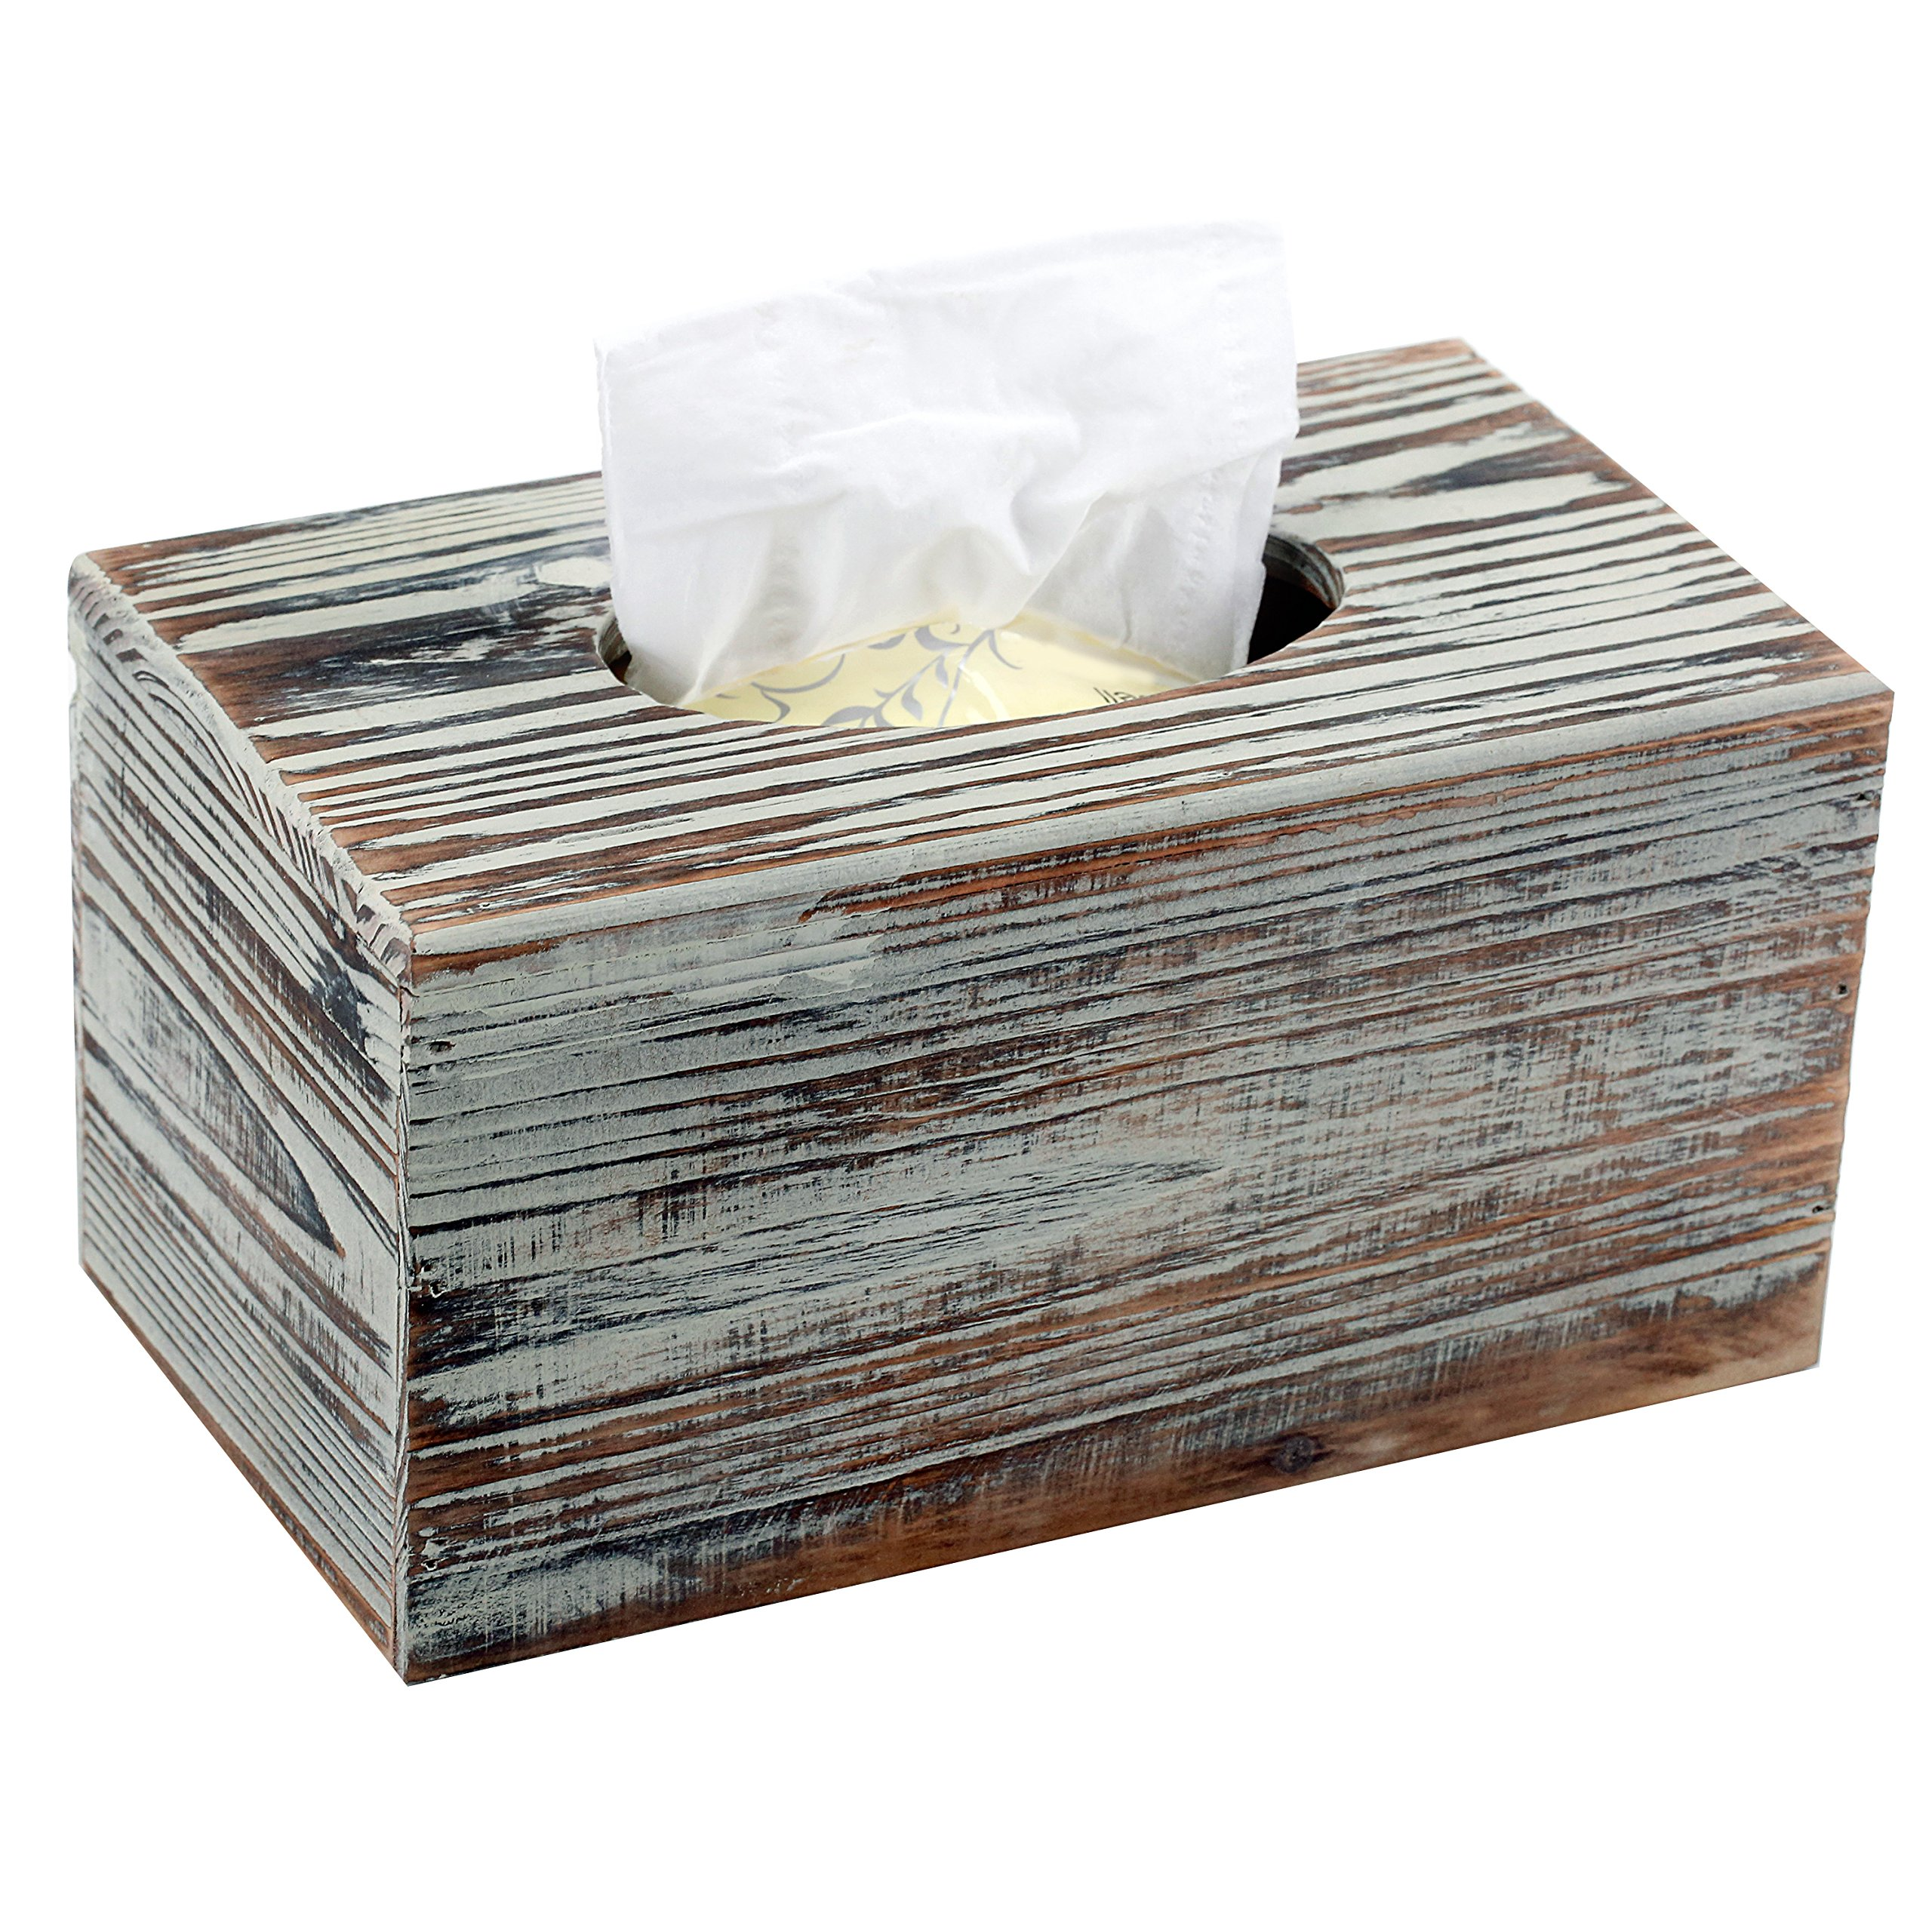 Facial Tissue Box Holder Decorative Box Cover for Bathroom Wooden AB Handicrafts DEAL OF THE DAY Bath Collection Bedroom or Office